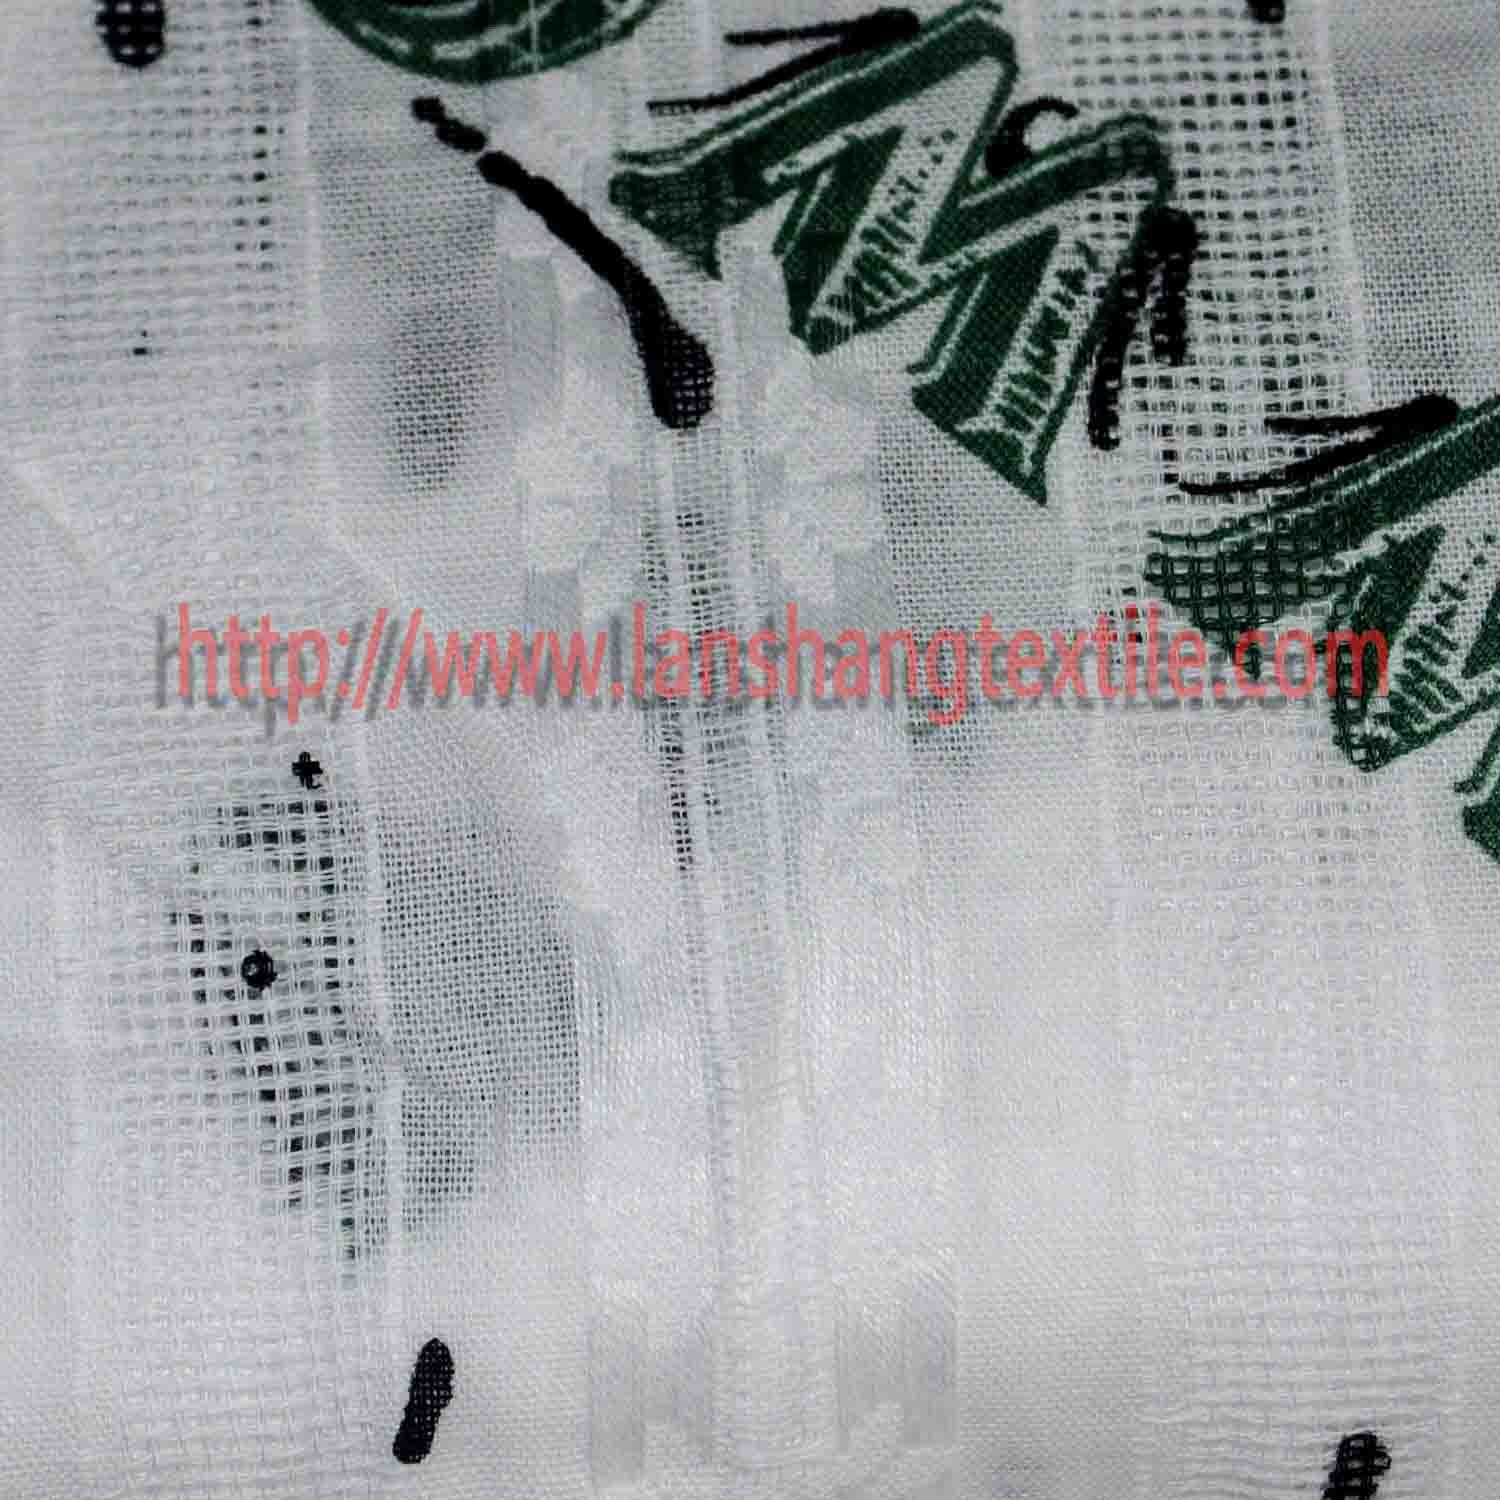 Cotton Fabric Dyed Fabric Dyed Jacquard Fabric Printing Fabric for Woman Dress Coat Skirt Children′s Garment.